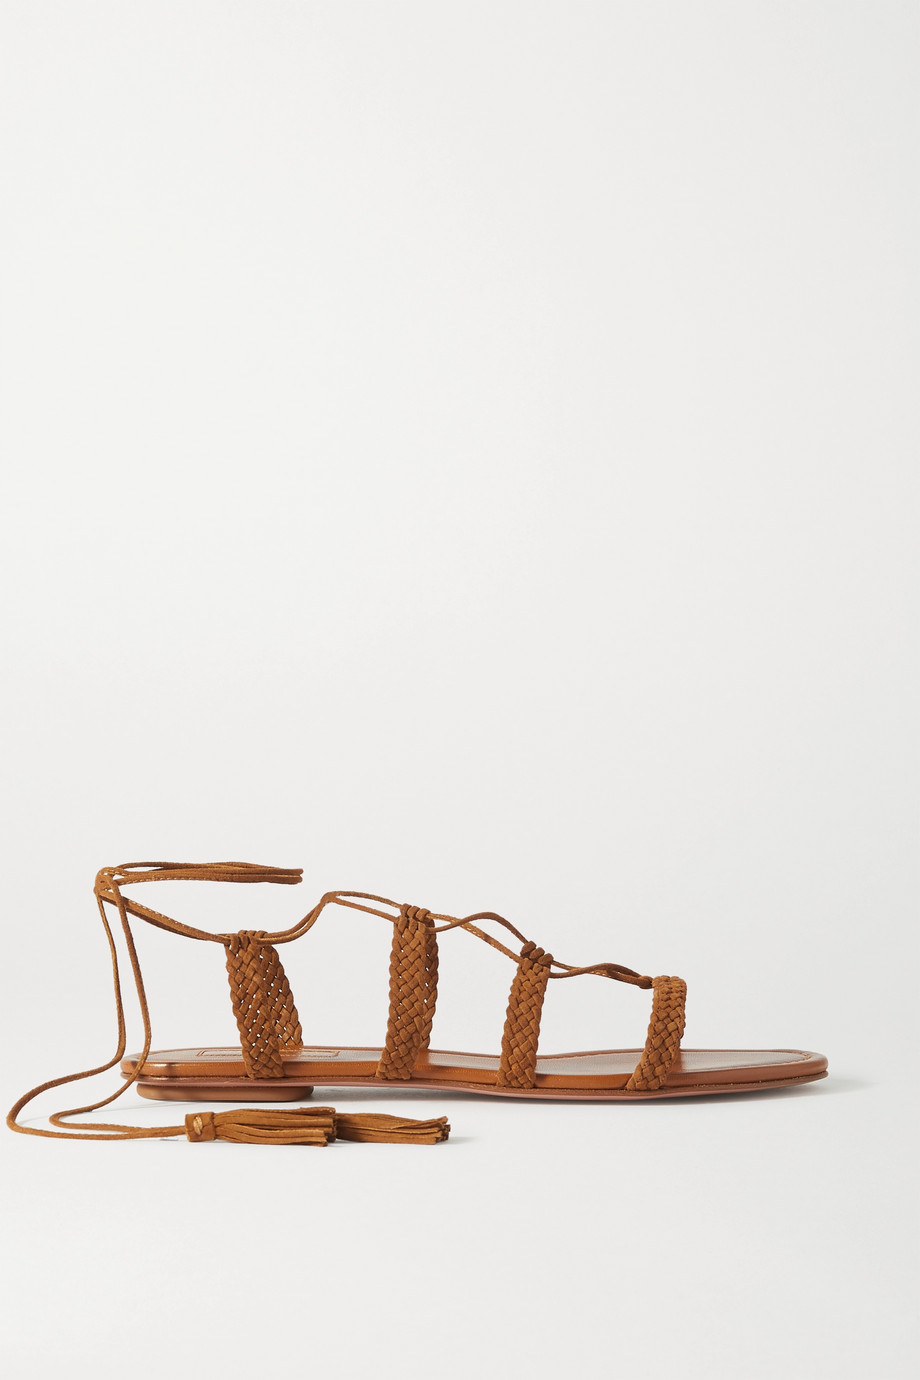 Aquazzura Stromboli braided suede sandals